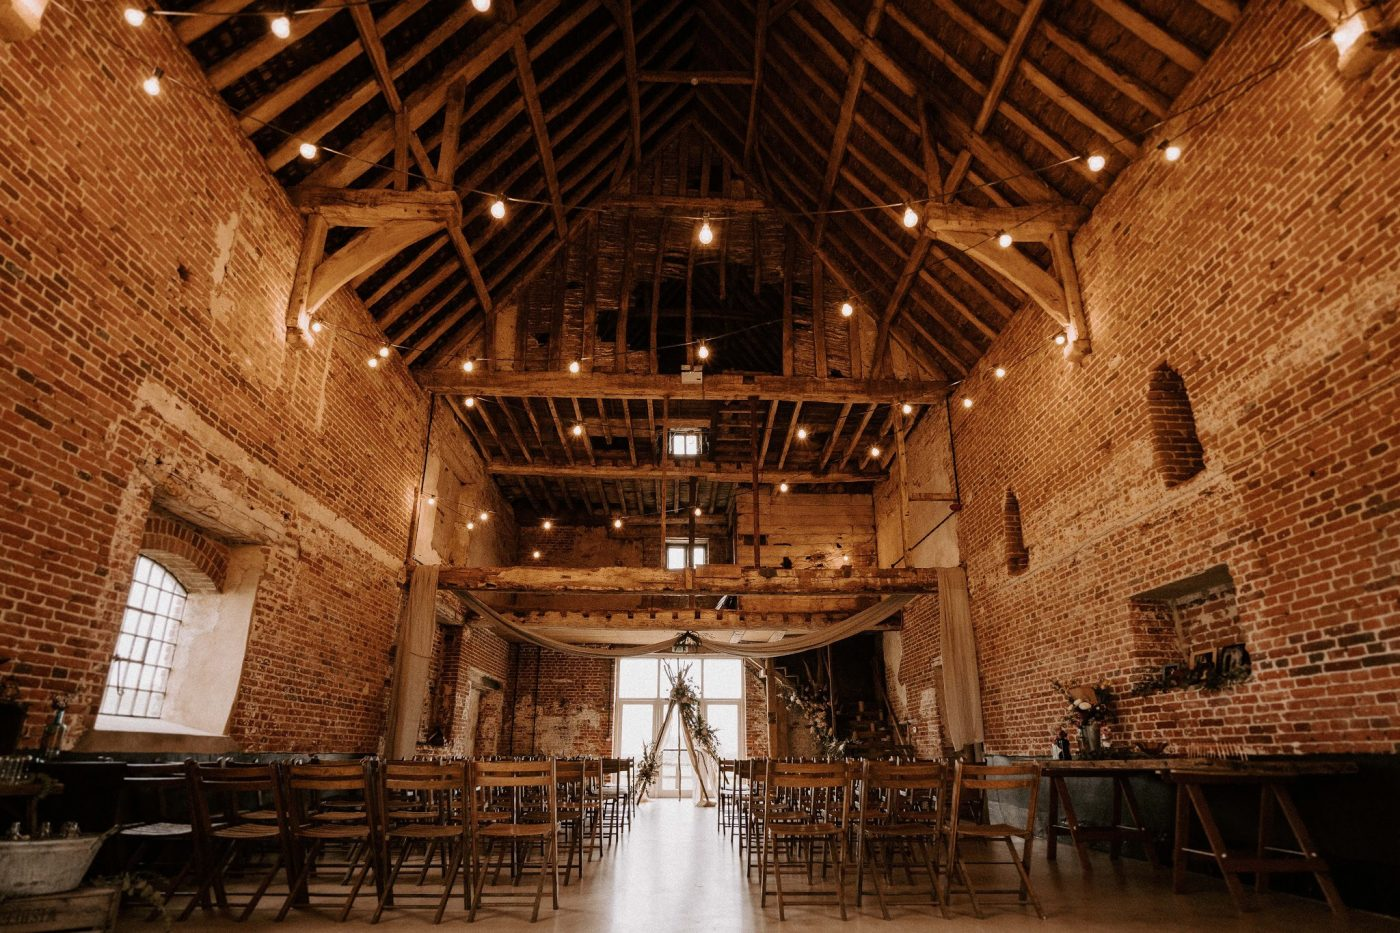 Godwick Great Barn Wedding Venue